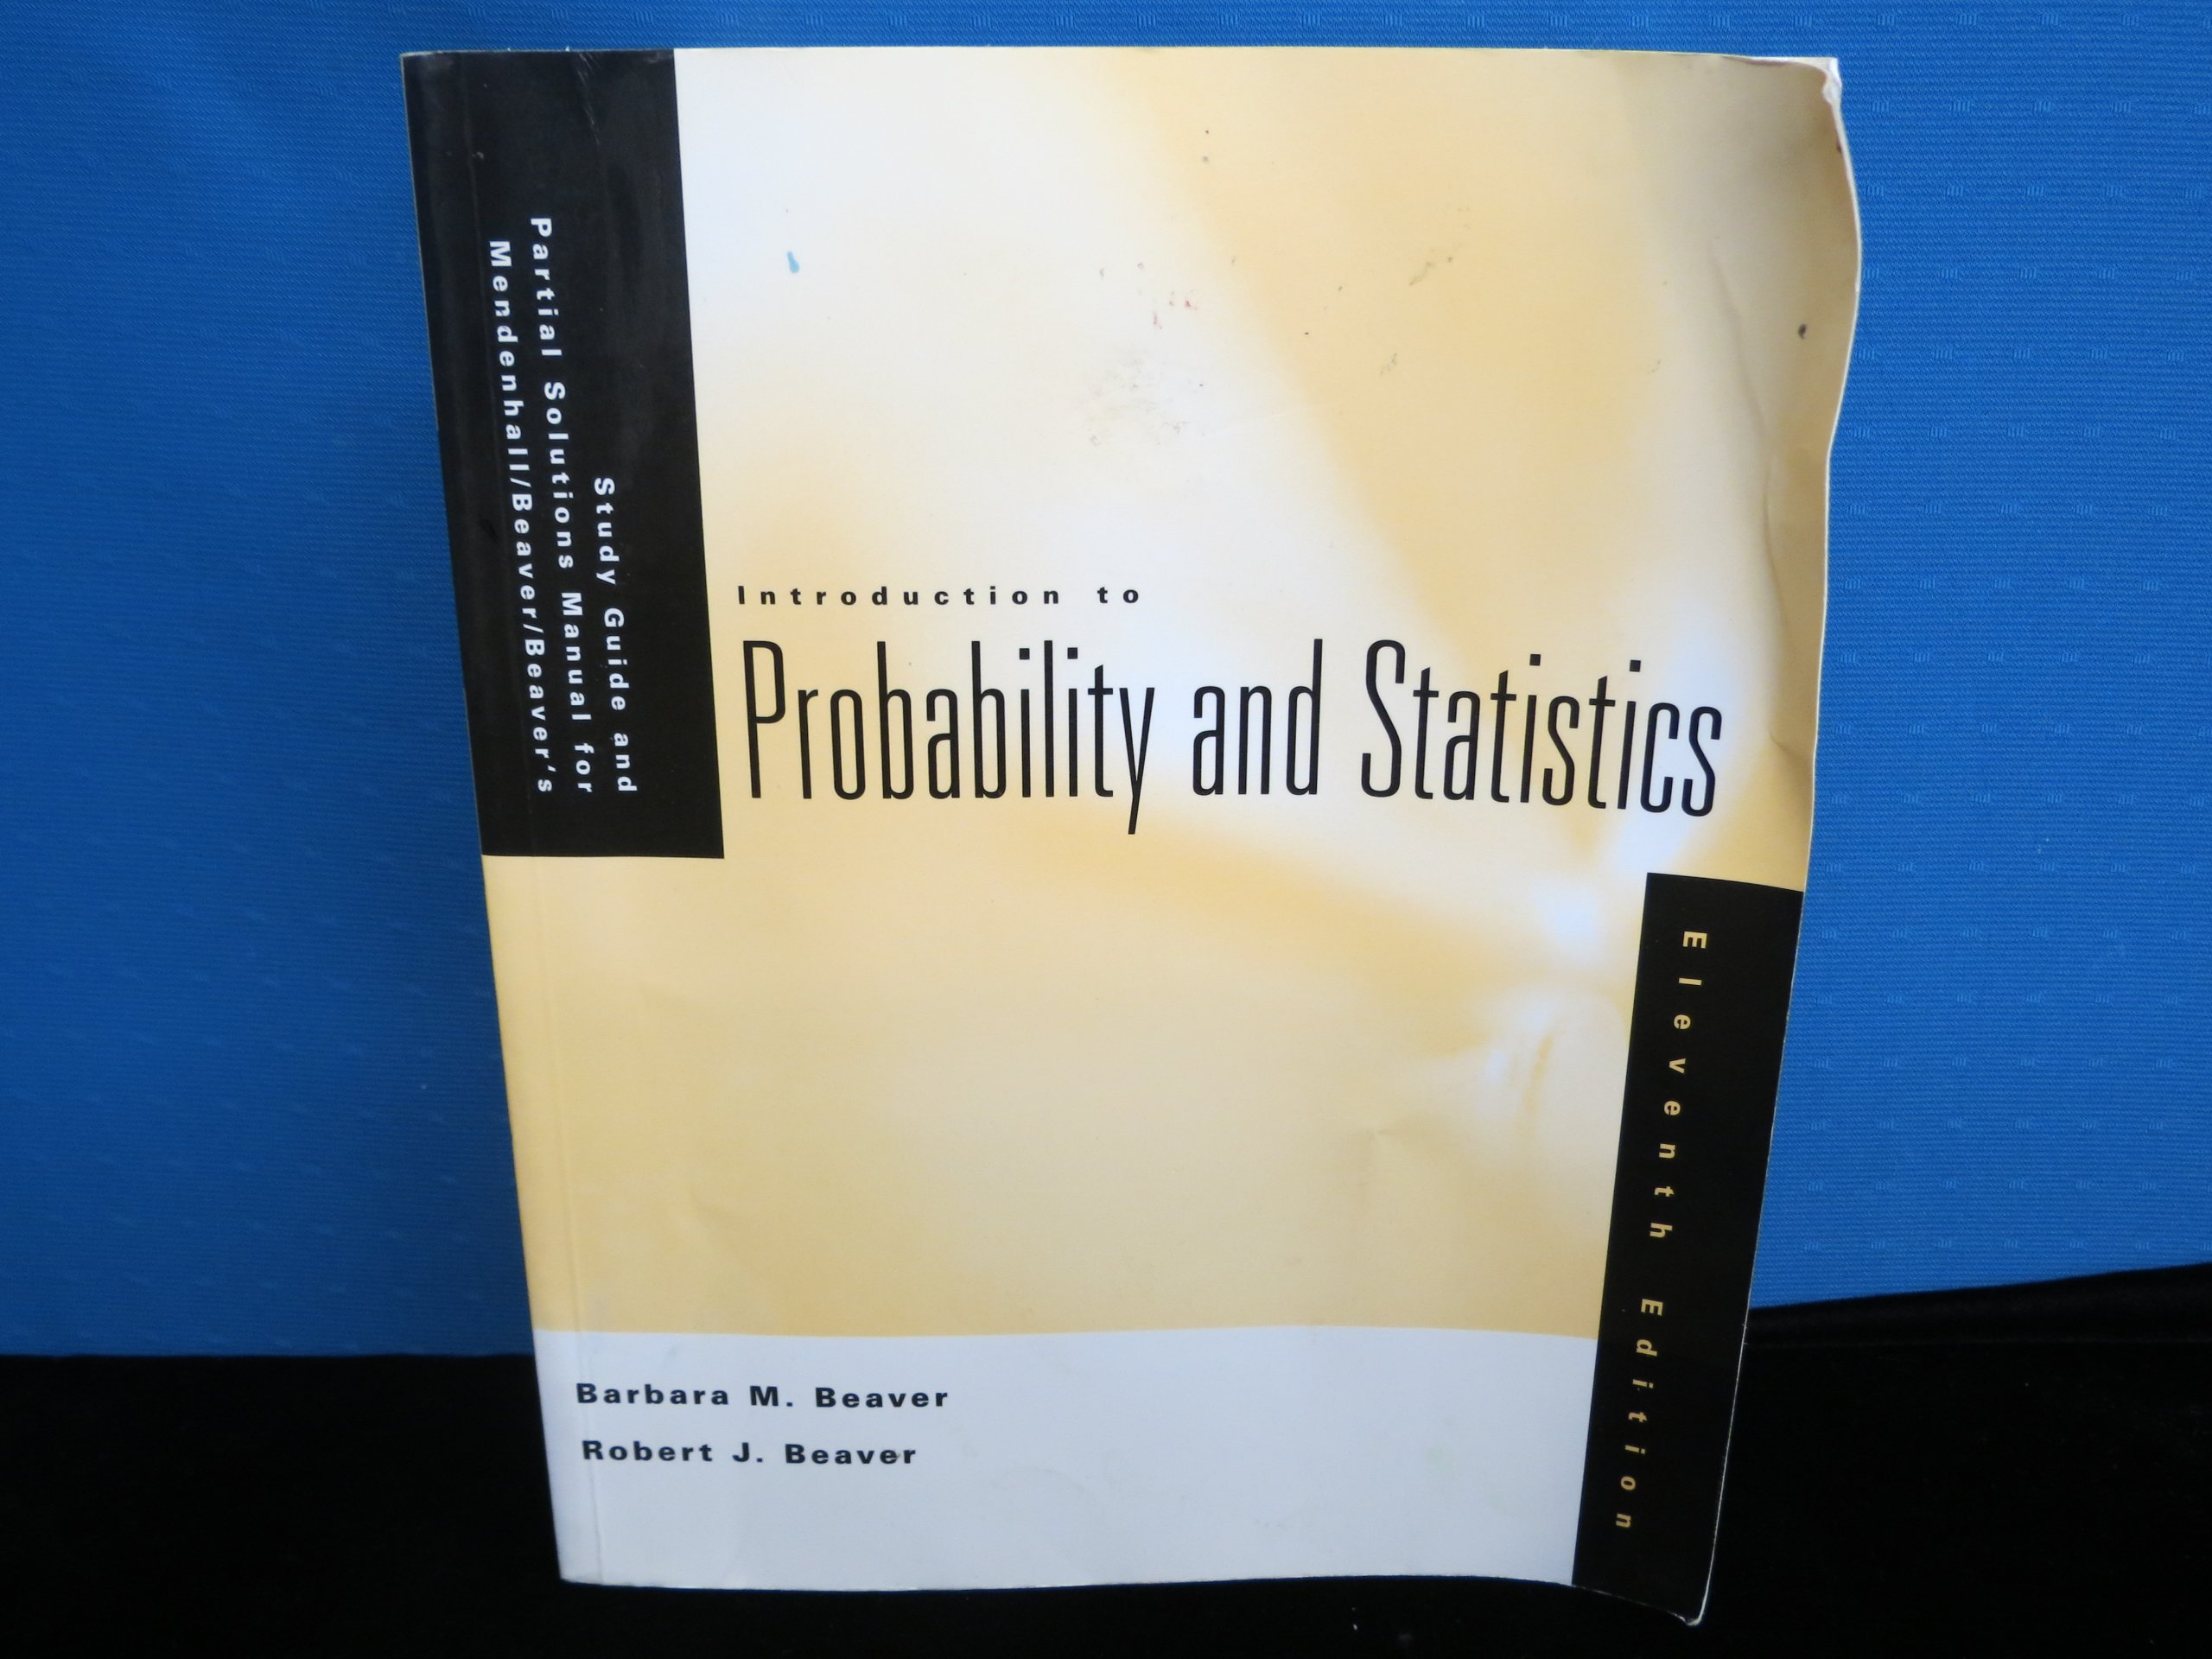 Introduction to Probability and Statistics: Study Guide and Solutions Manual:  William Mendenhall, Barbara M. Beaver, Robert J. Beaver: 9780534395209:  Books ...